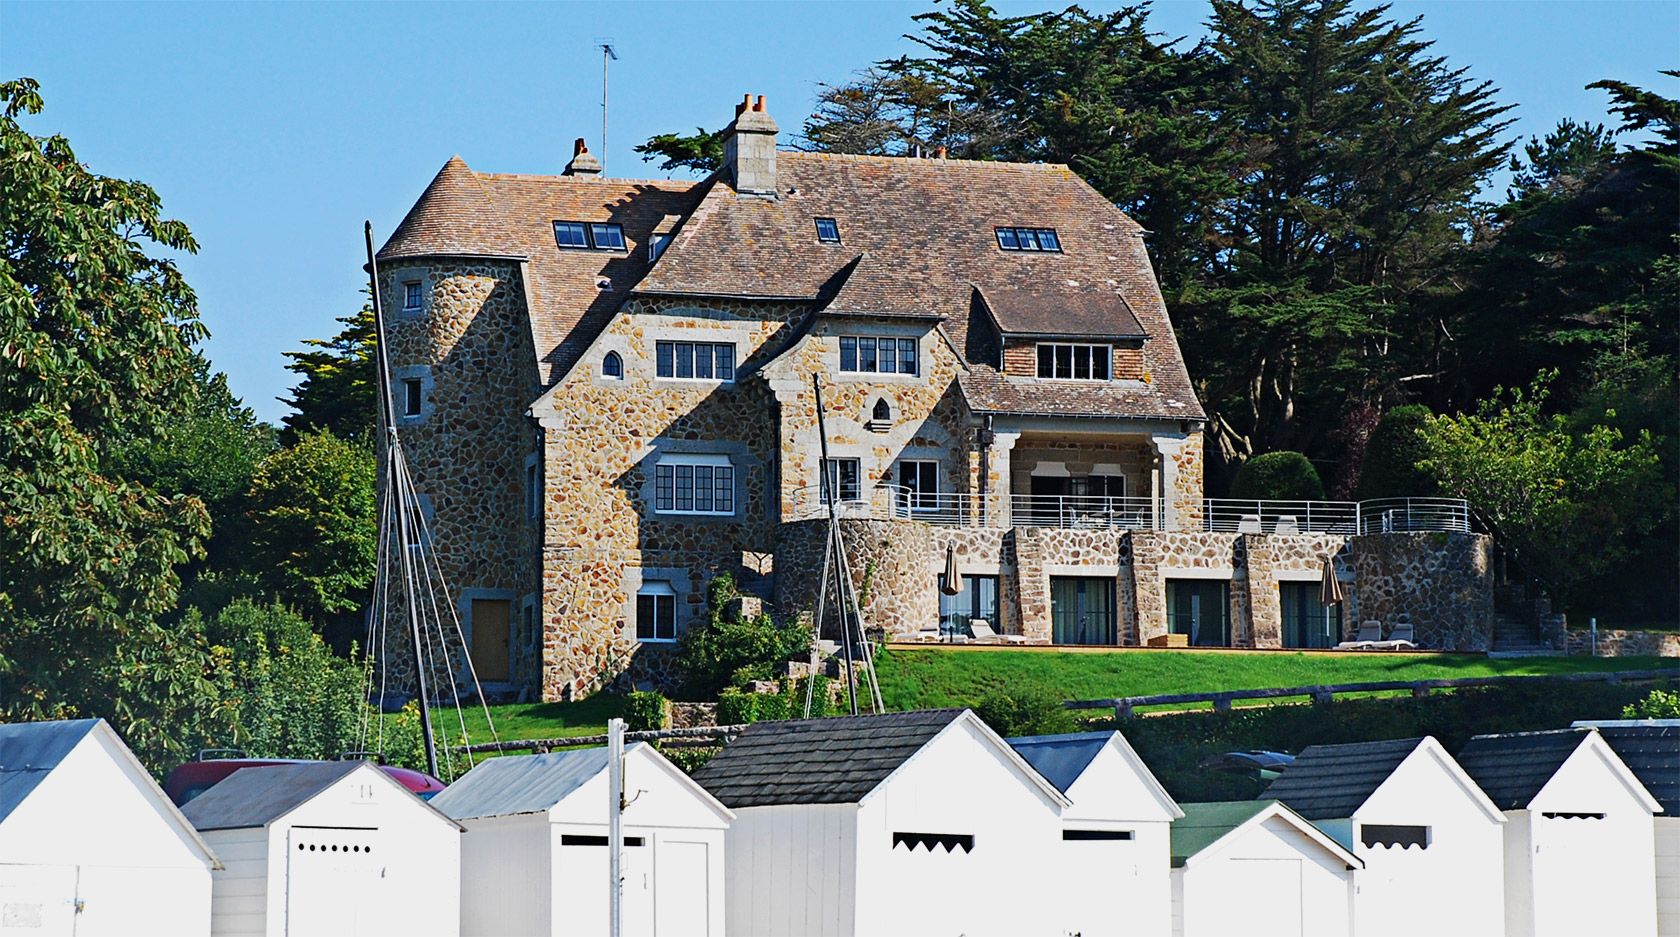 Hotel de charme en bretagne location hotel finist re sud for Reservation hotel de charme